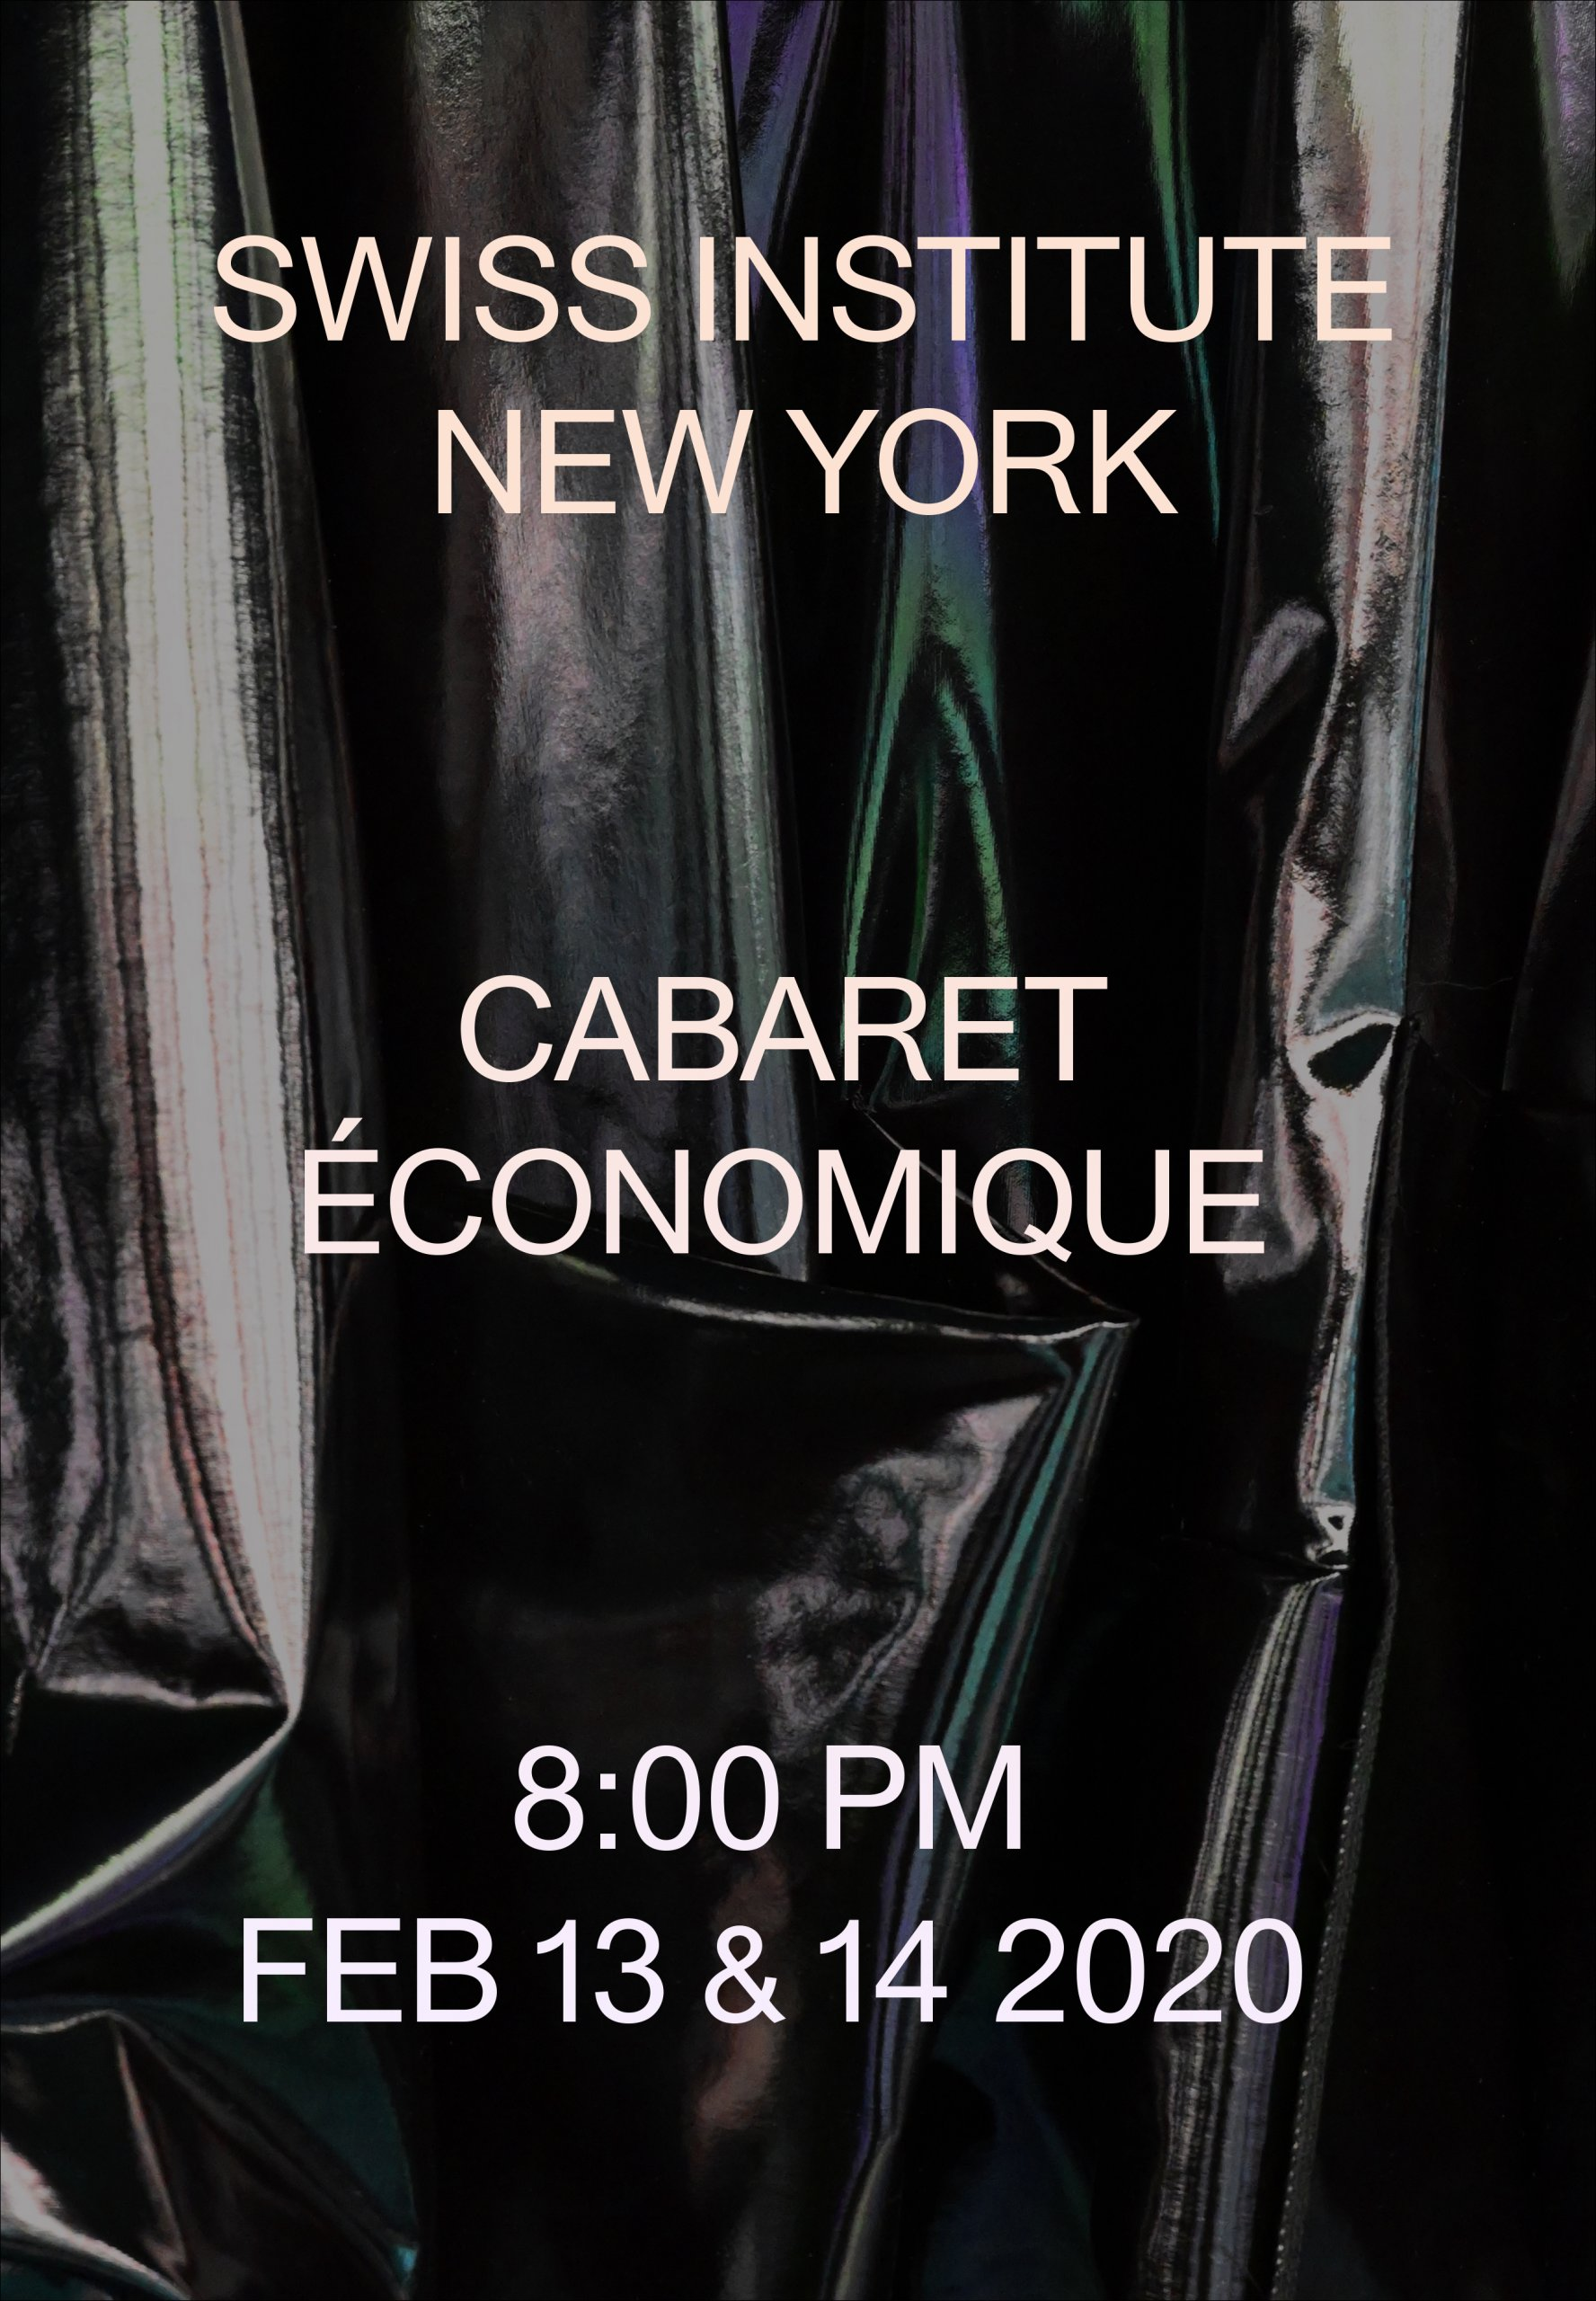 Performance | Cabaret Économique with Irena Haiduk, Dean Kissick, Christian Schmitz and more Swiss Institute